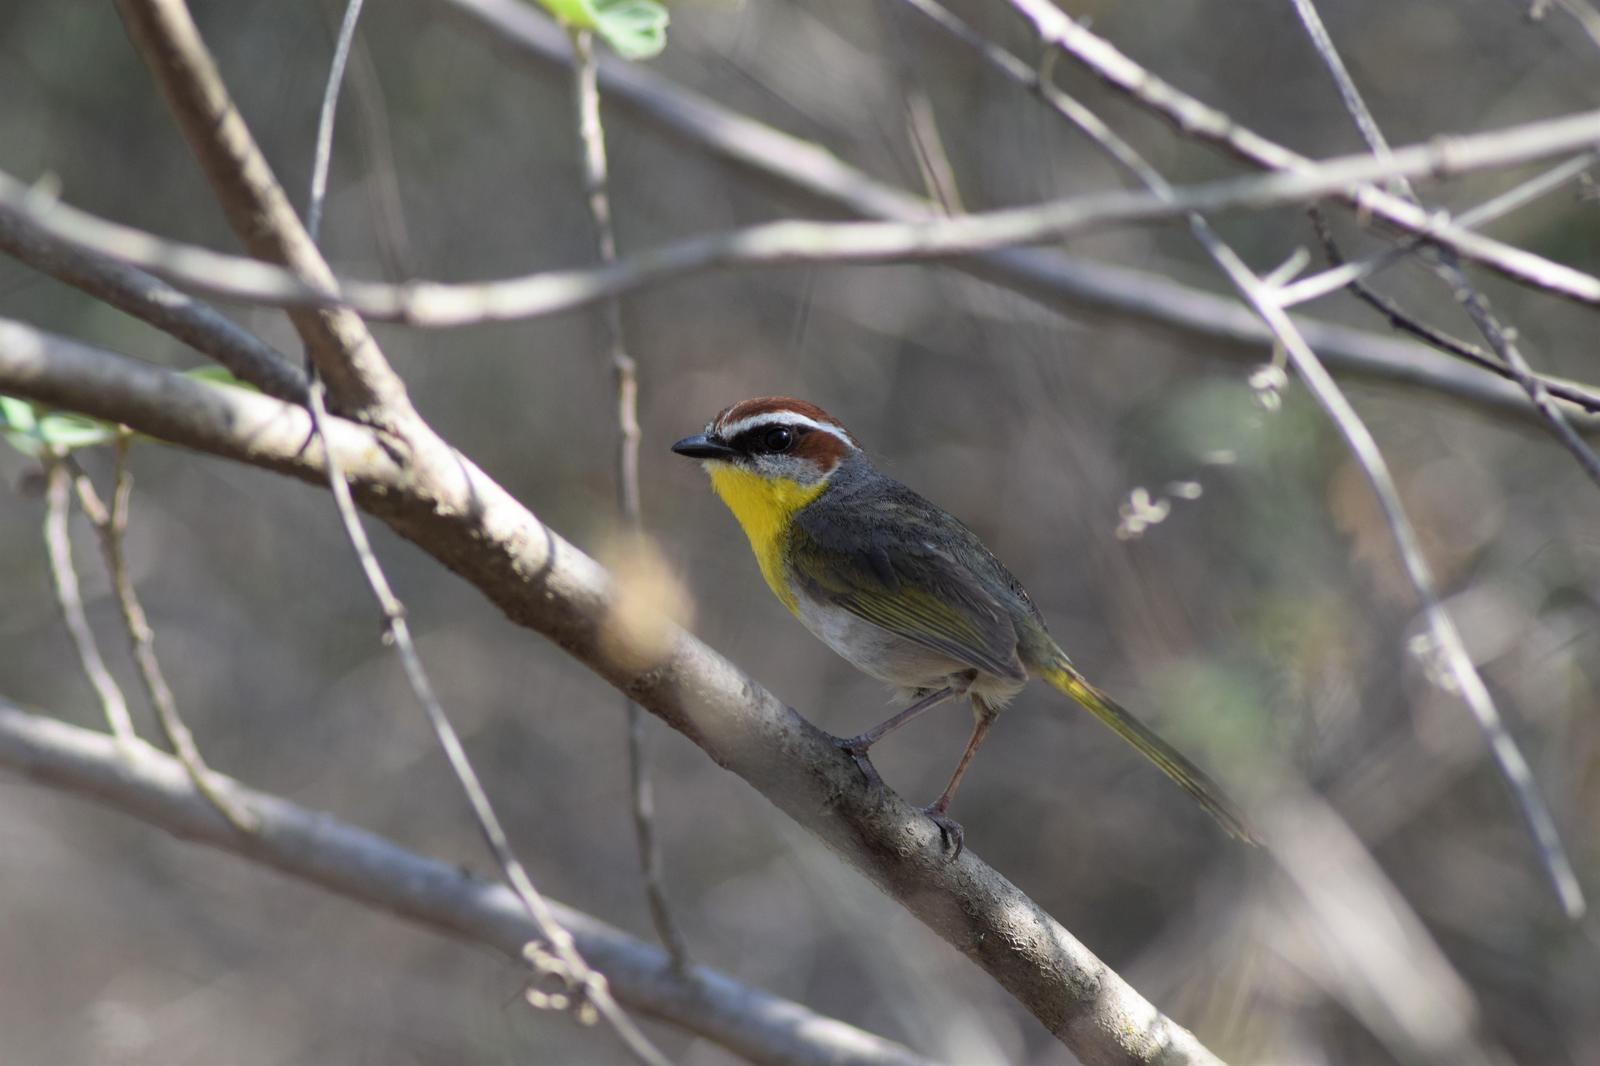 Rufous-capped Warbler Photo by Laura A. Martínez Cantú